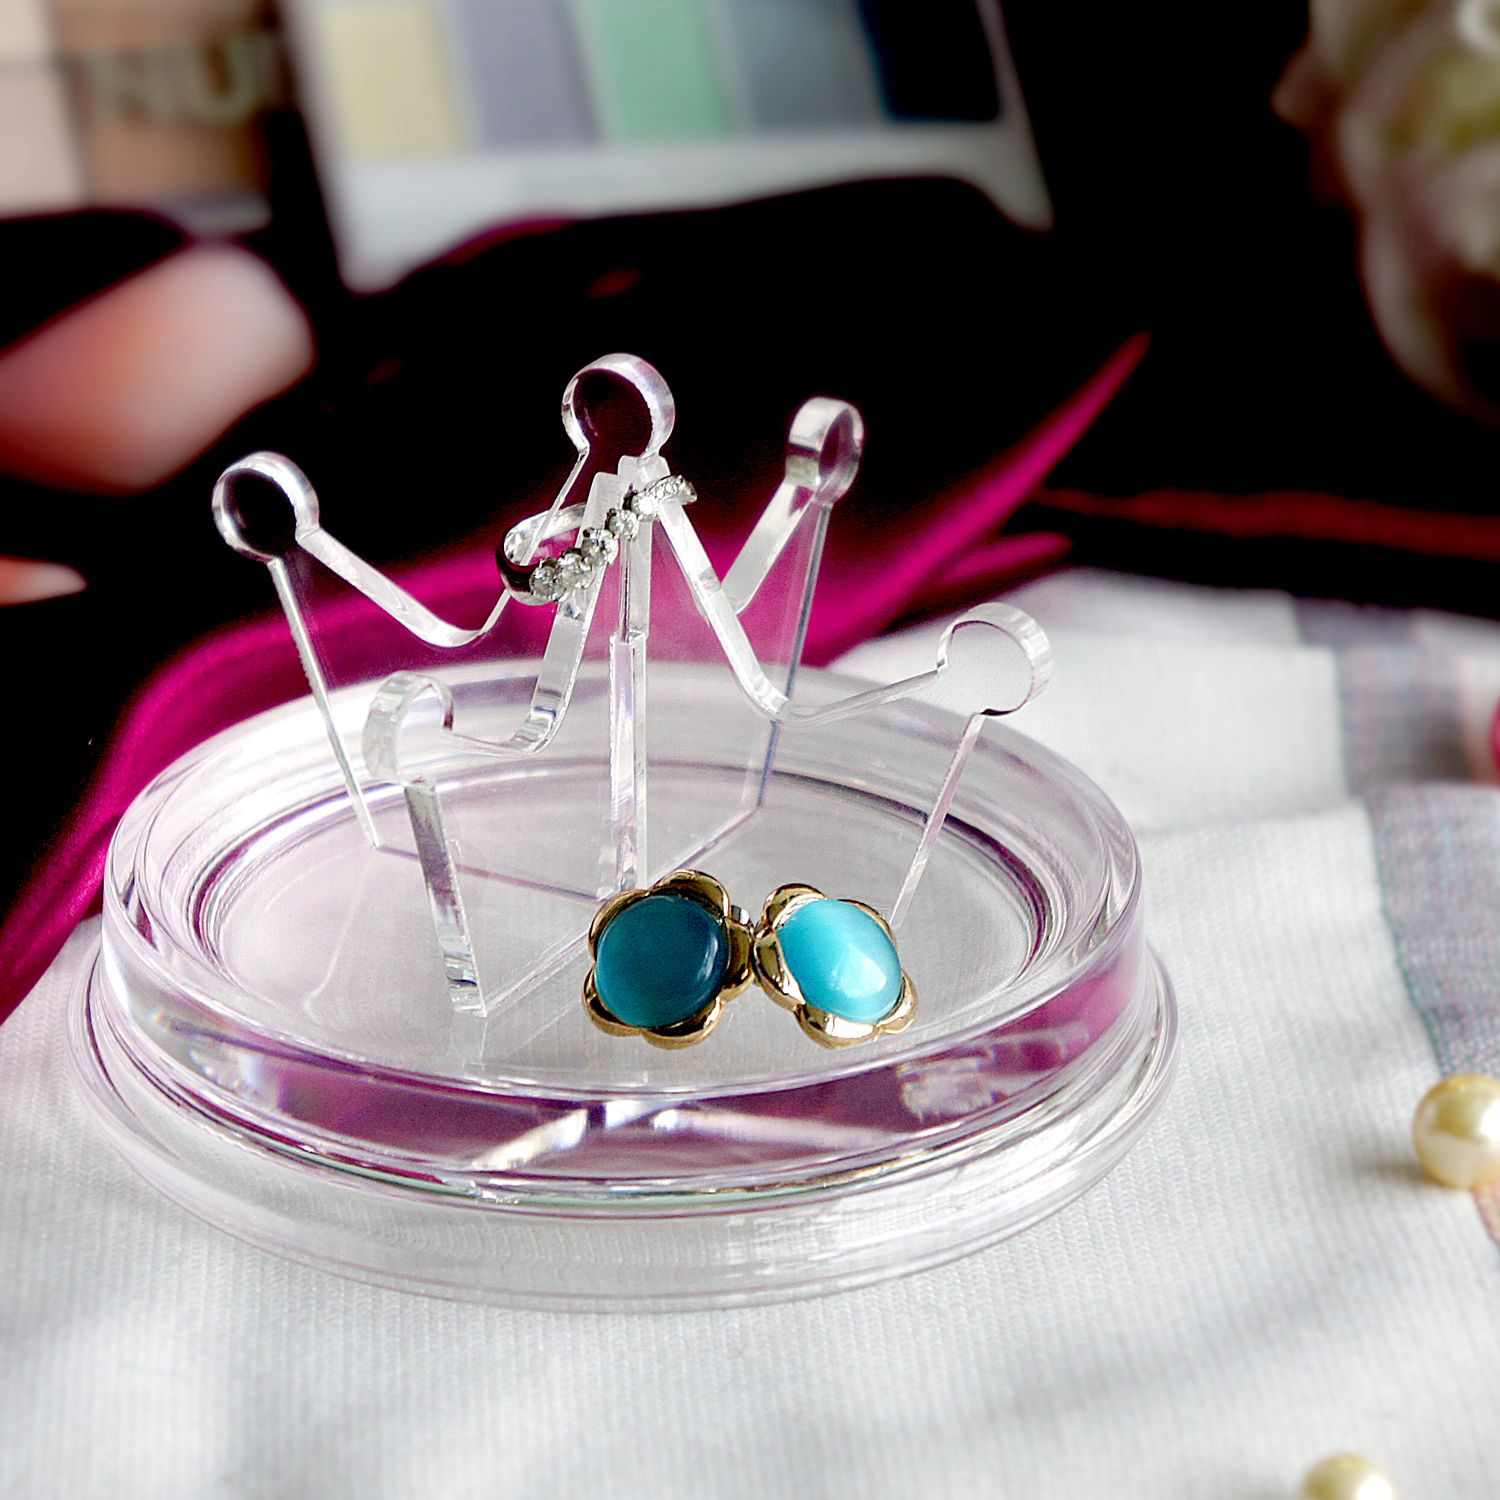 Queen's Crown Acrylic Ring Holder, Jewelry Tray